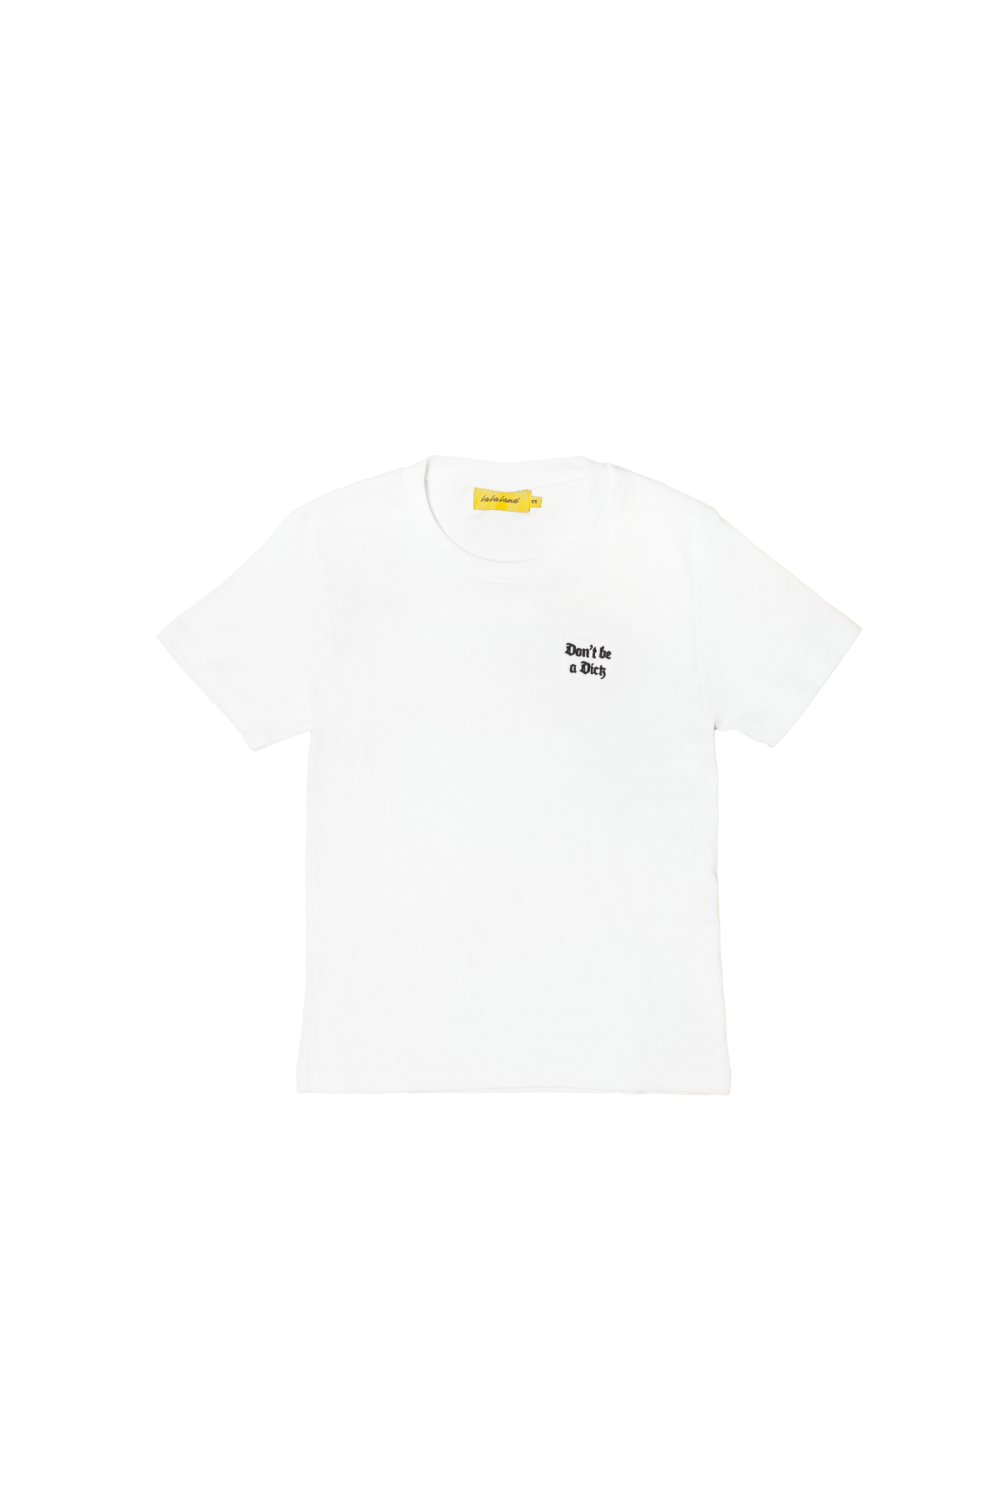 Don't be a Dick Baby Tee